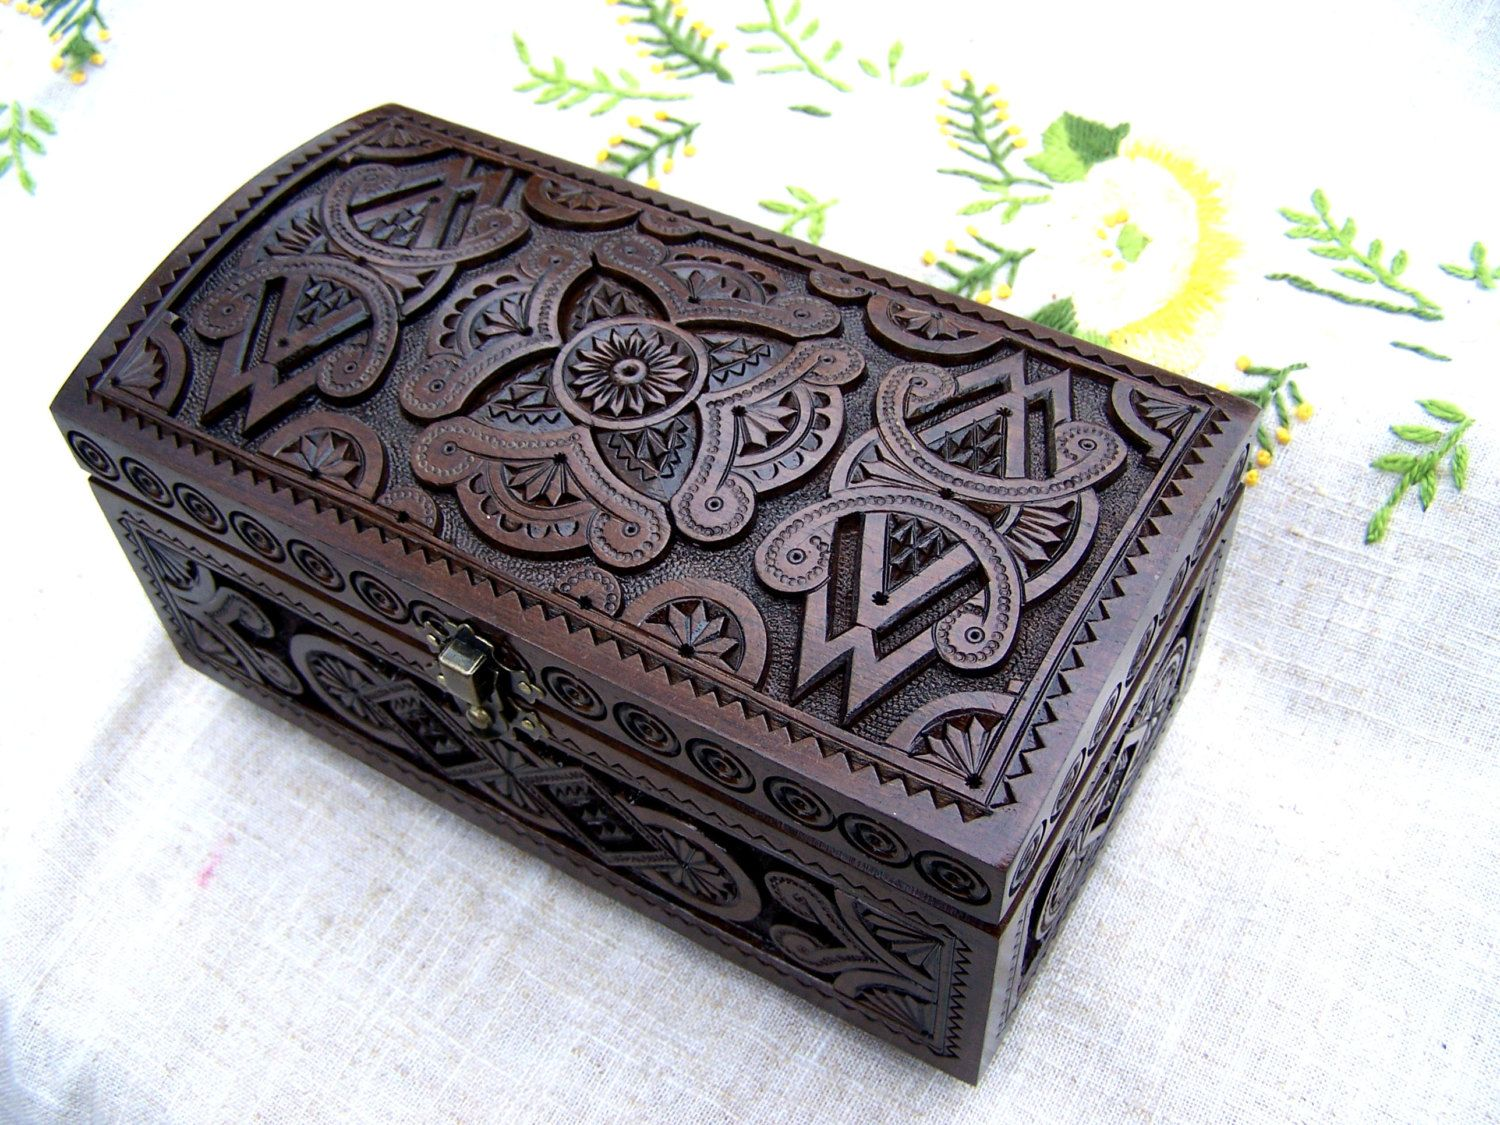 Jewelry Box Wooden Box Ring Box Jewelry Boxes Wedding Gift Weddings Jewelry Weddings Decorations Wood Jewelry Box Personalized Jewelry Box Wooden Jewelry Boxes